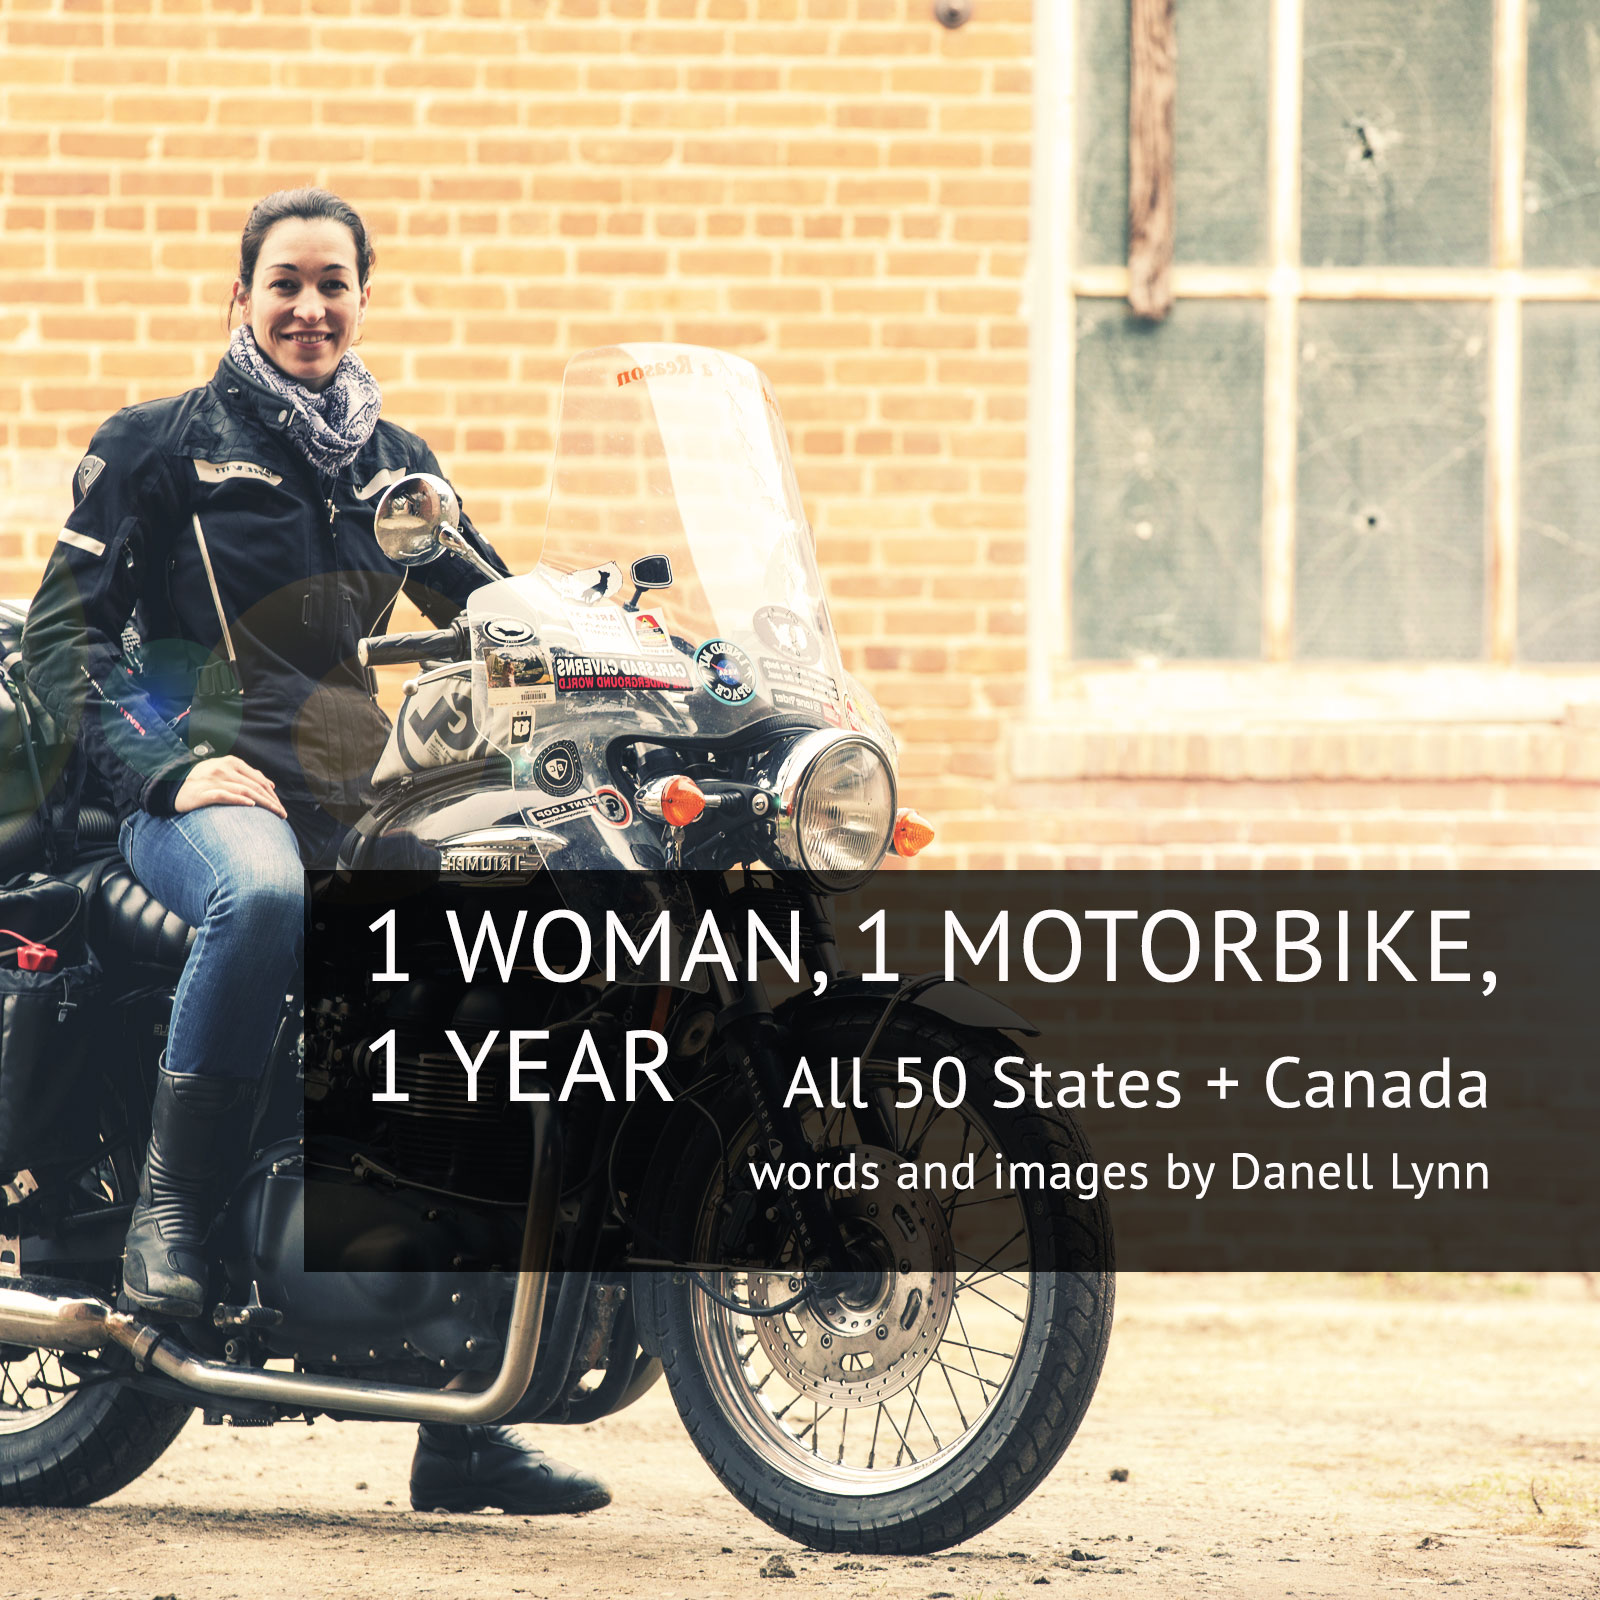 Motorbike Woman Danell Lynn, world record holder. long distance motorcycle rider on Triumph Bonneville. Photo by Triumph America